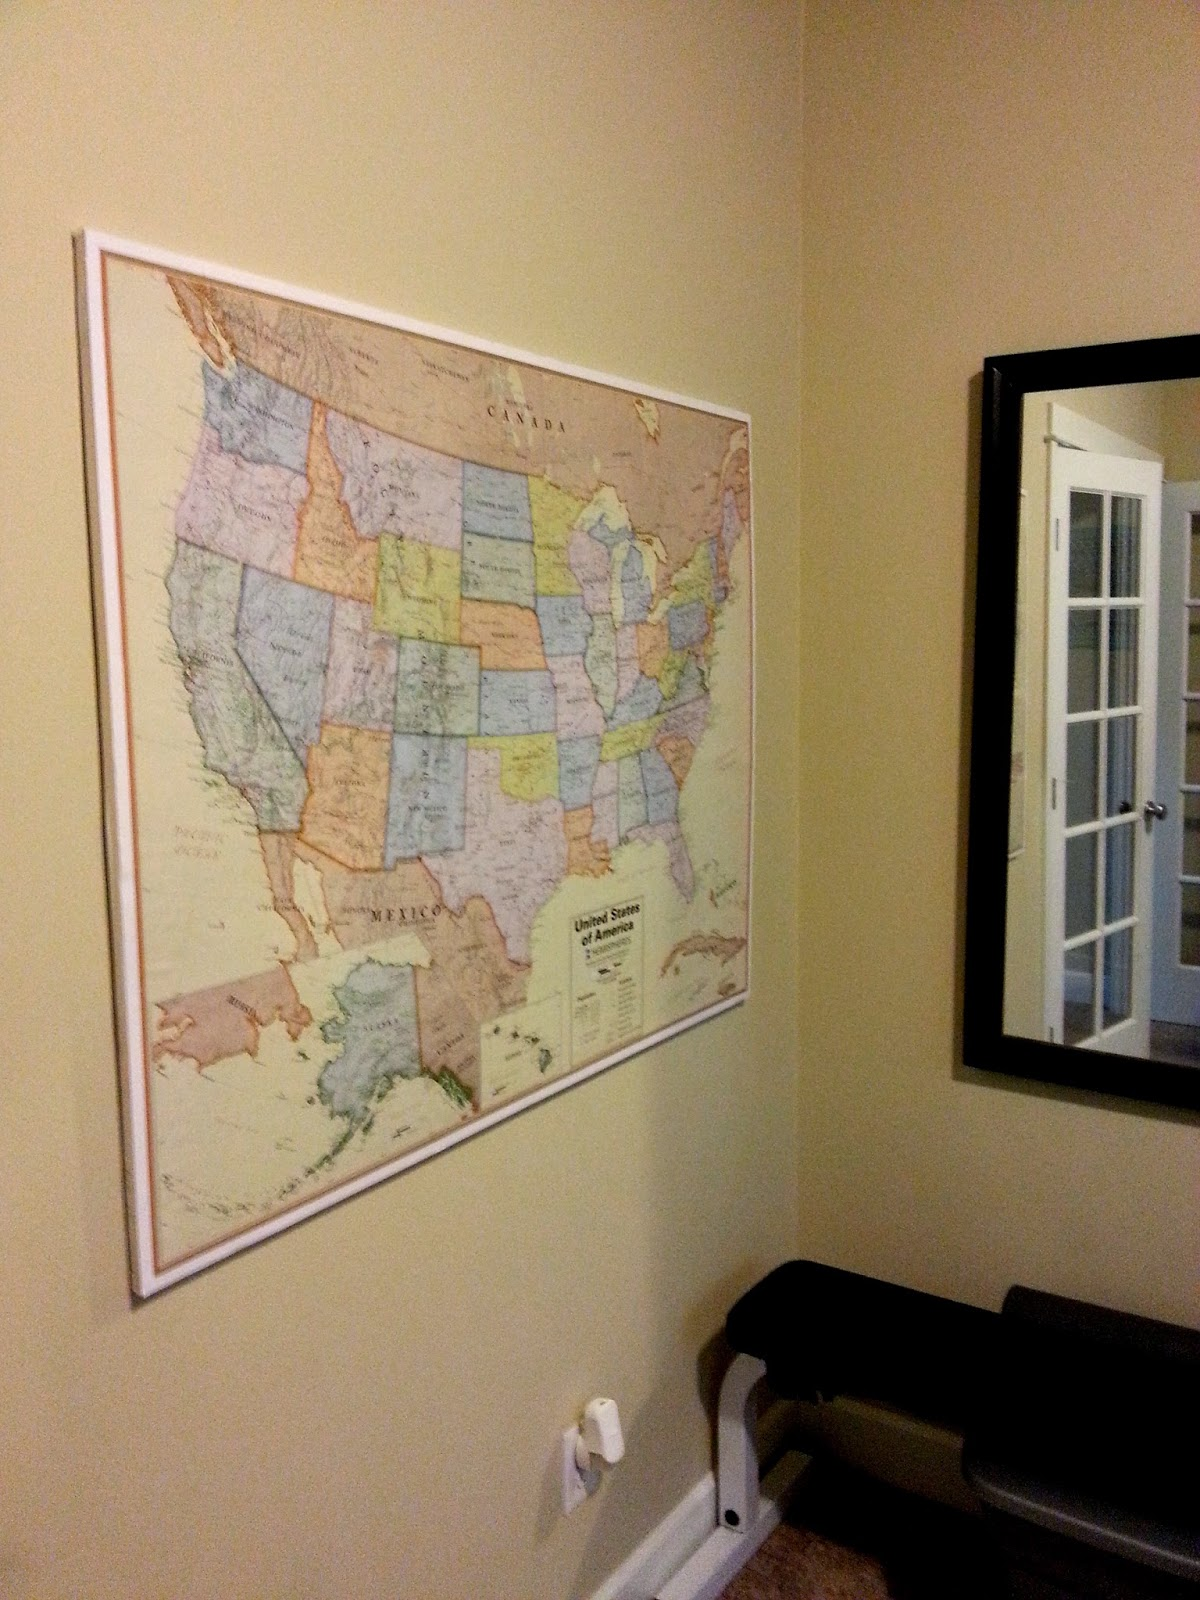 Mount And Hang Large Maps With Ease So Much To Make - How to hang a large map